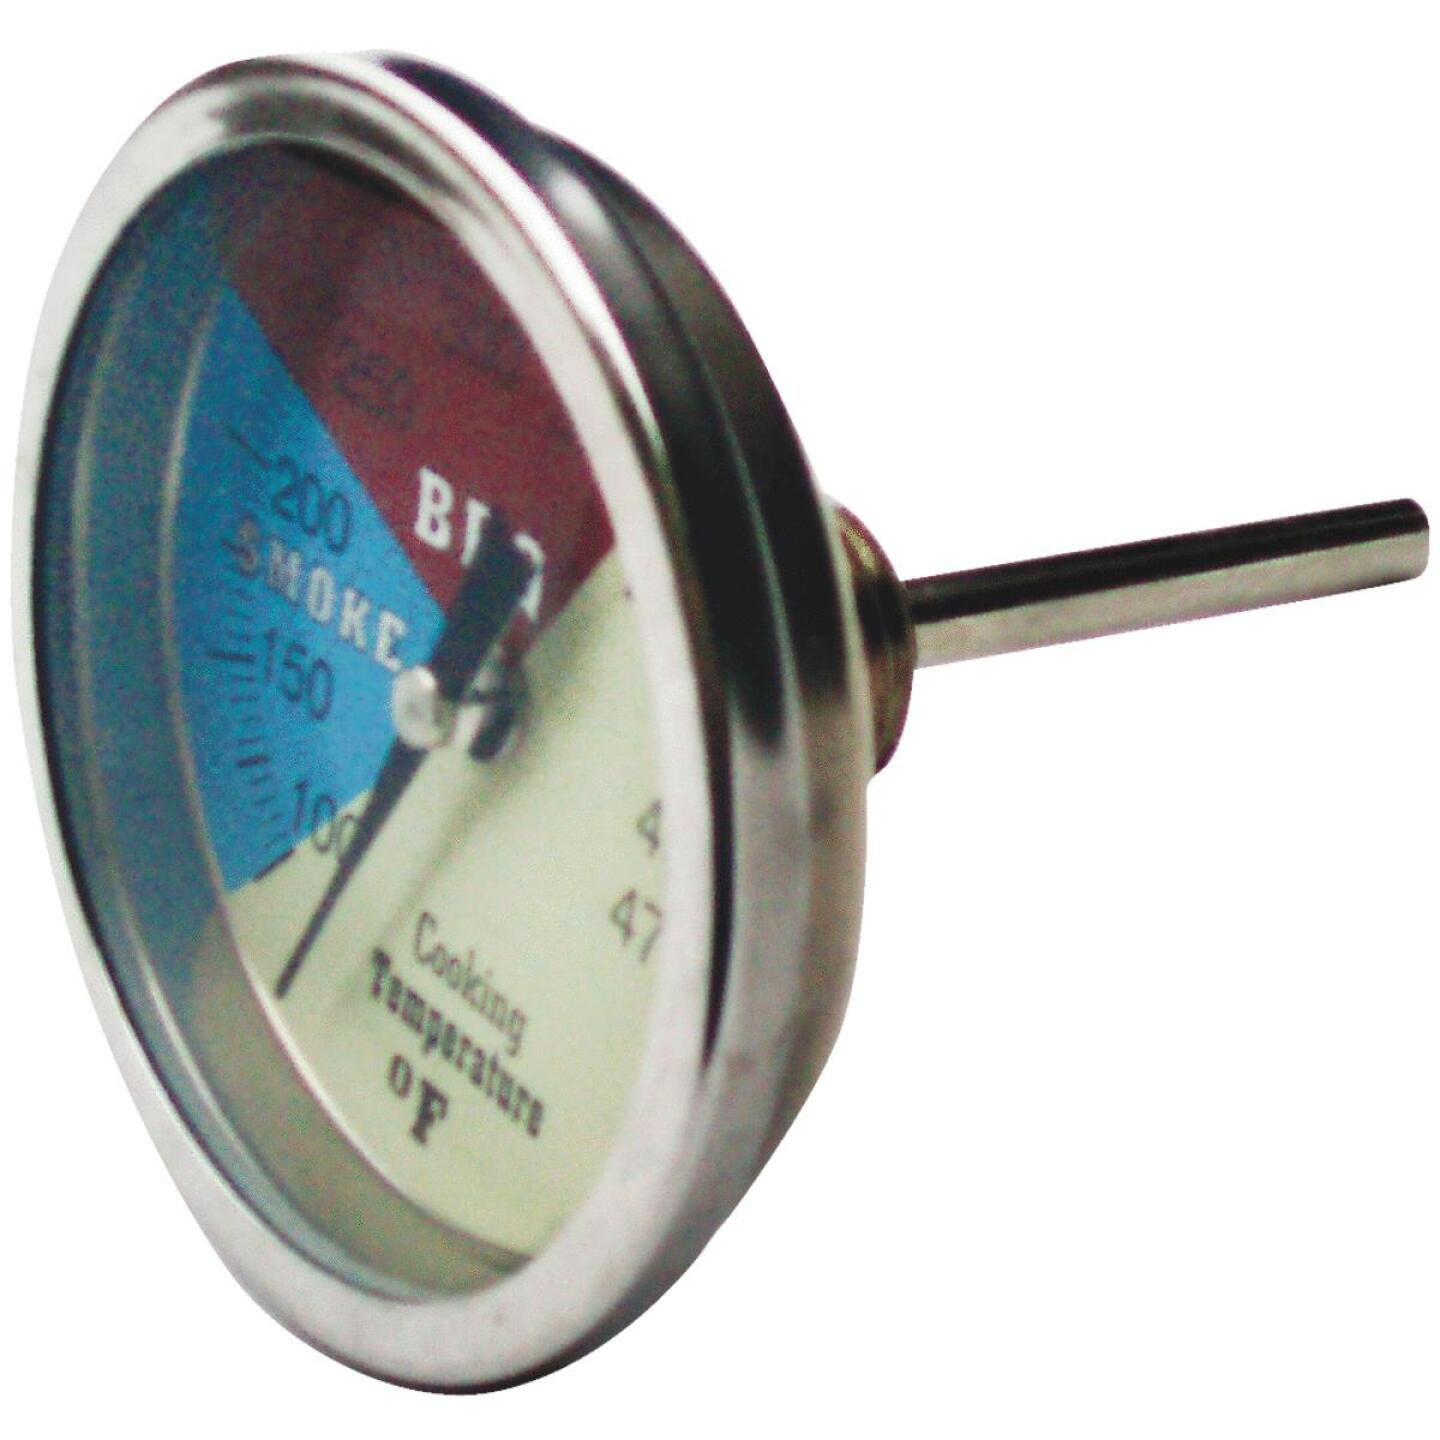 Old Smokey Products Analog 3 In. Stainless Steel Temperature Gauge Thermometer Image 1